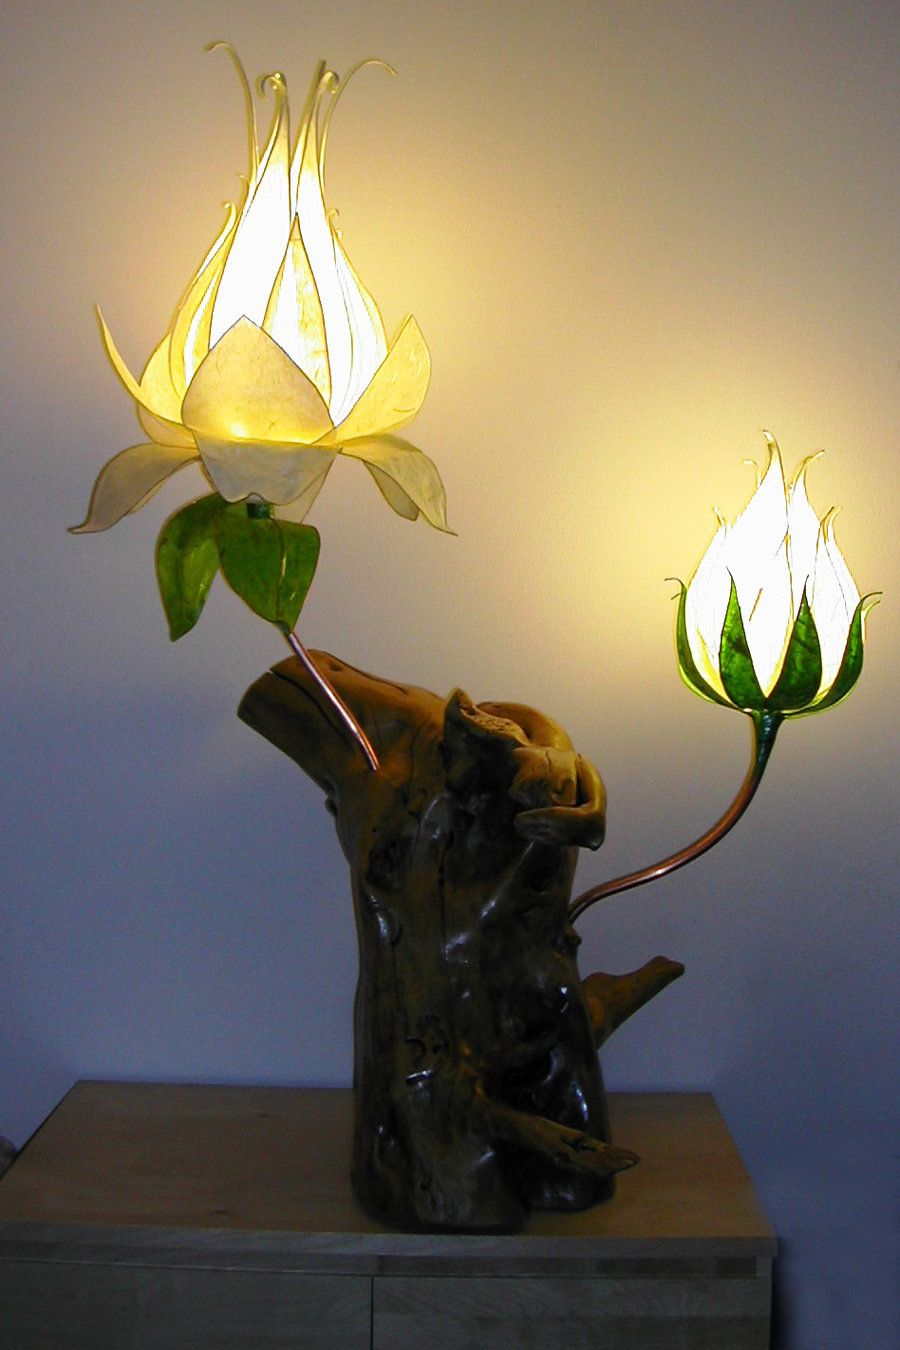 Fairy Flowers Double Ivory 1 Commission Flower Lamp Handmade Lamps Cool Lighting